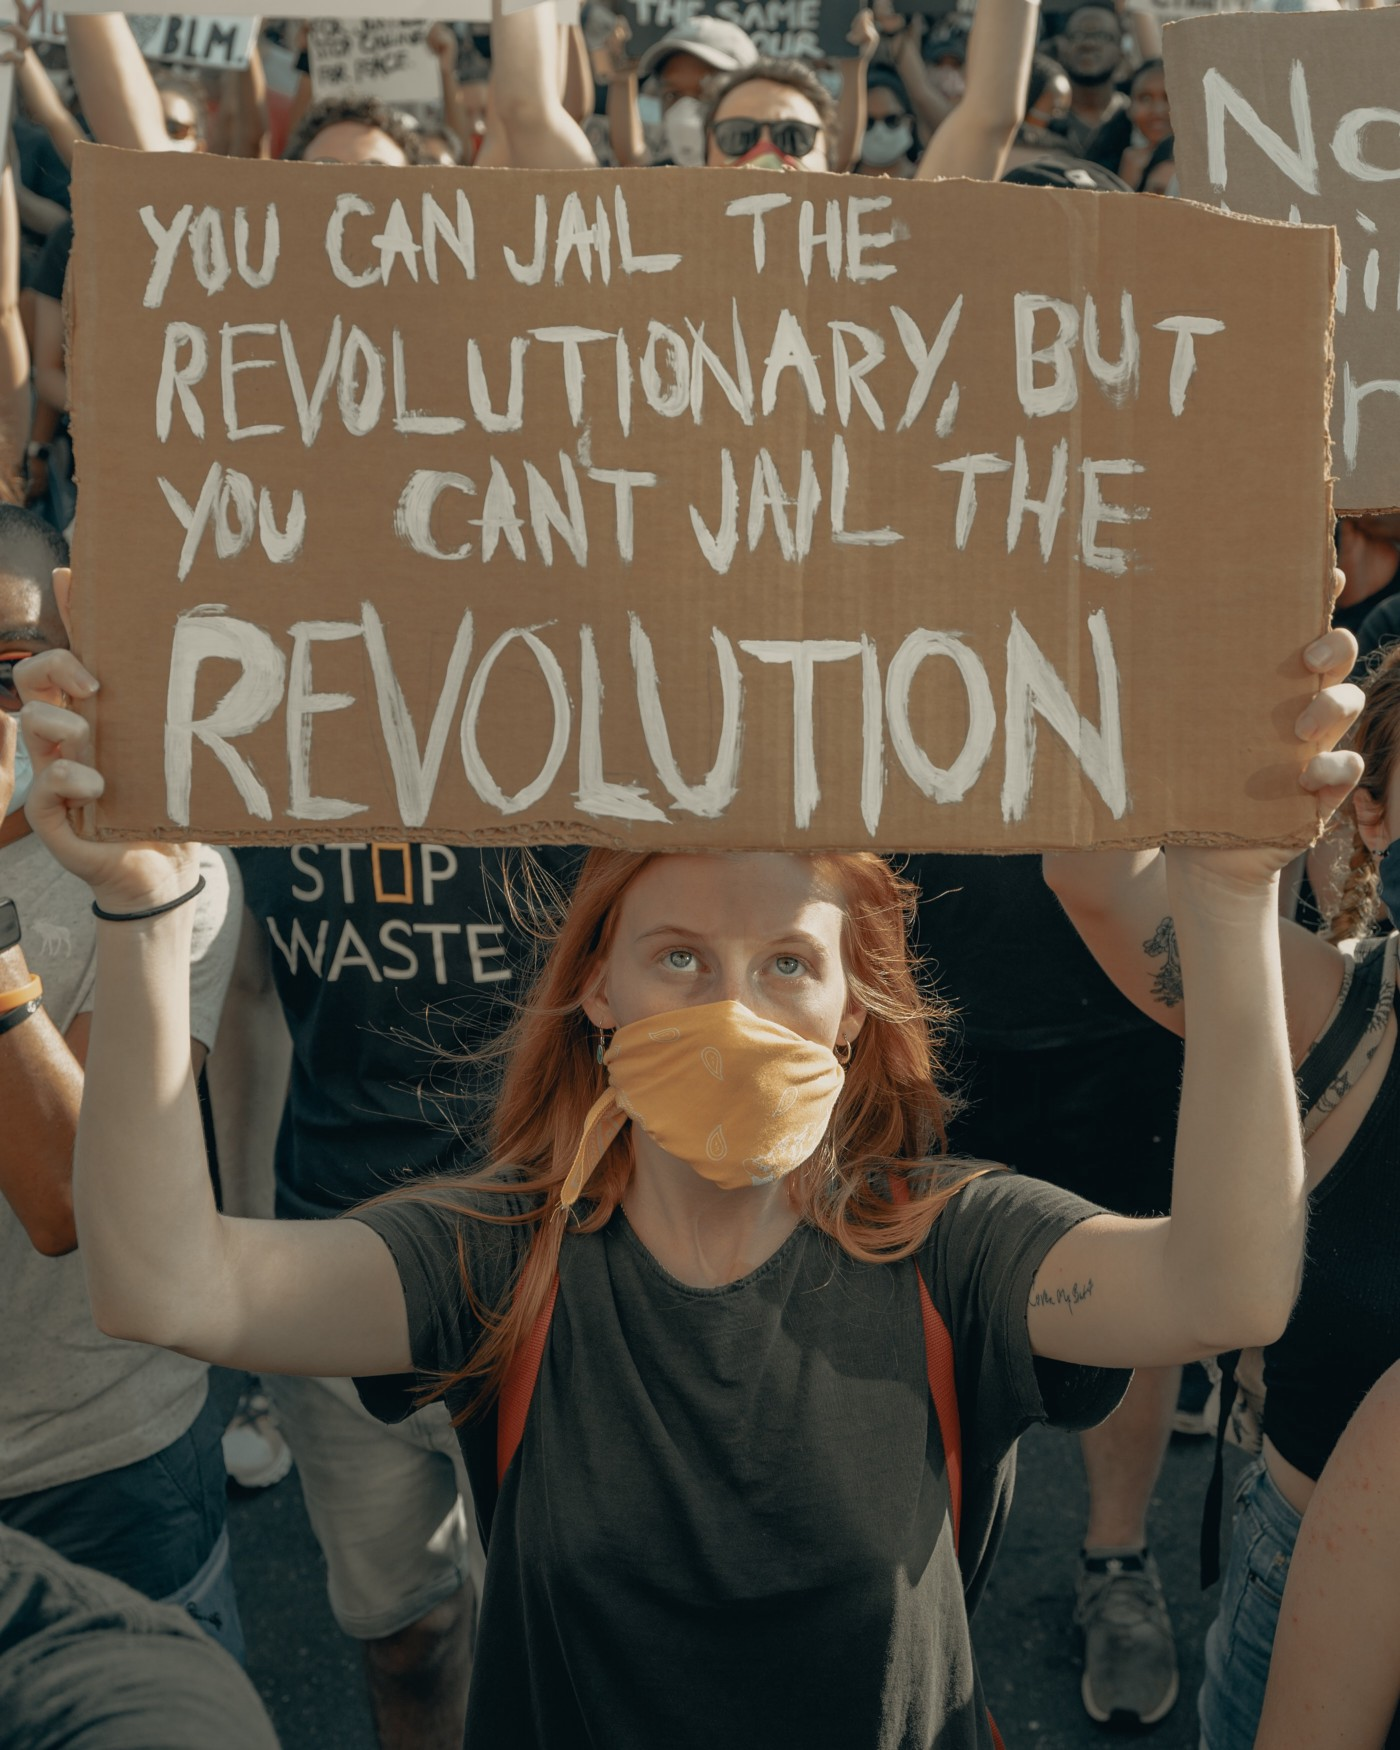 """Photo of a young woman in a crowd of protesters marching together. She is wearing a COVID mask and holding up a cardboard sign with the hand painted message, """"YOU CAN JAIL THE REVOLUTIONARY, BUT YOU CAN'T JAIL THE REVOLUTION"""""""